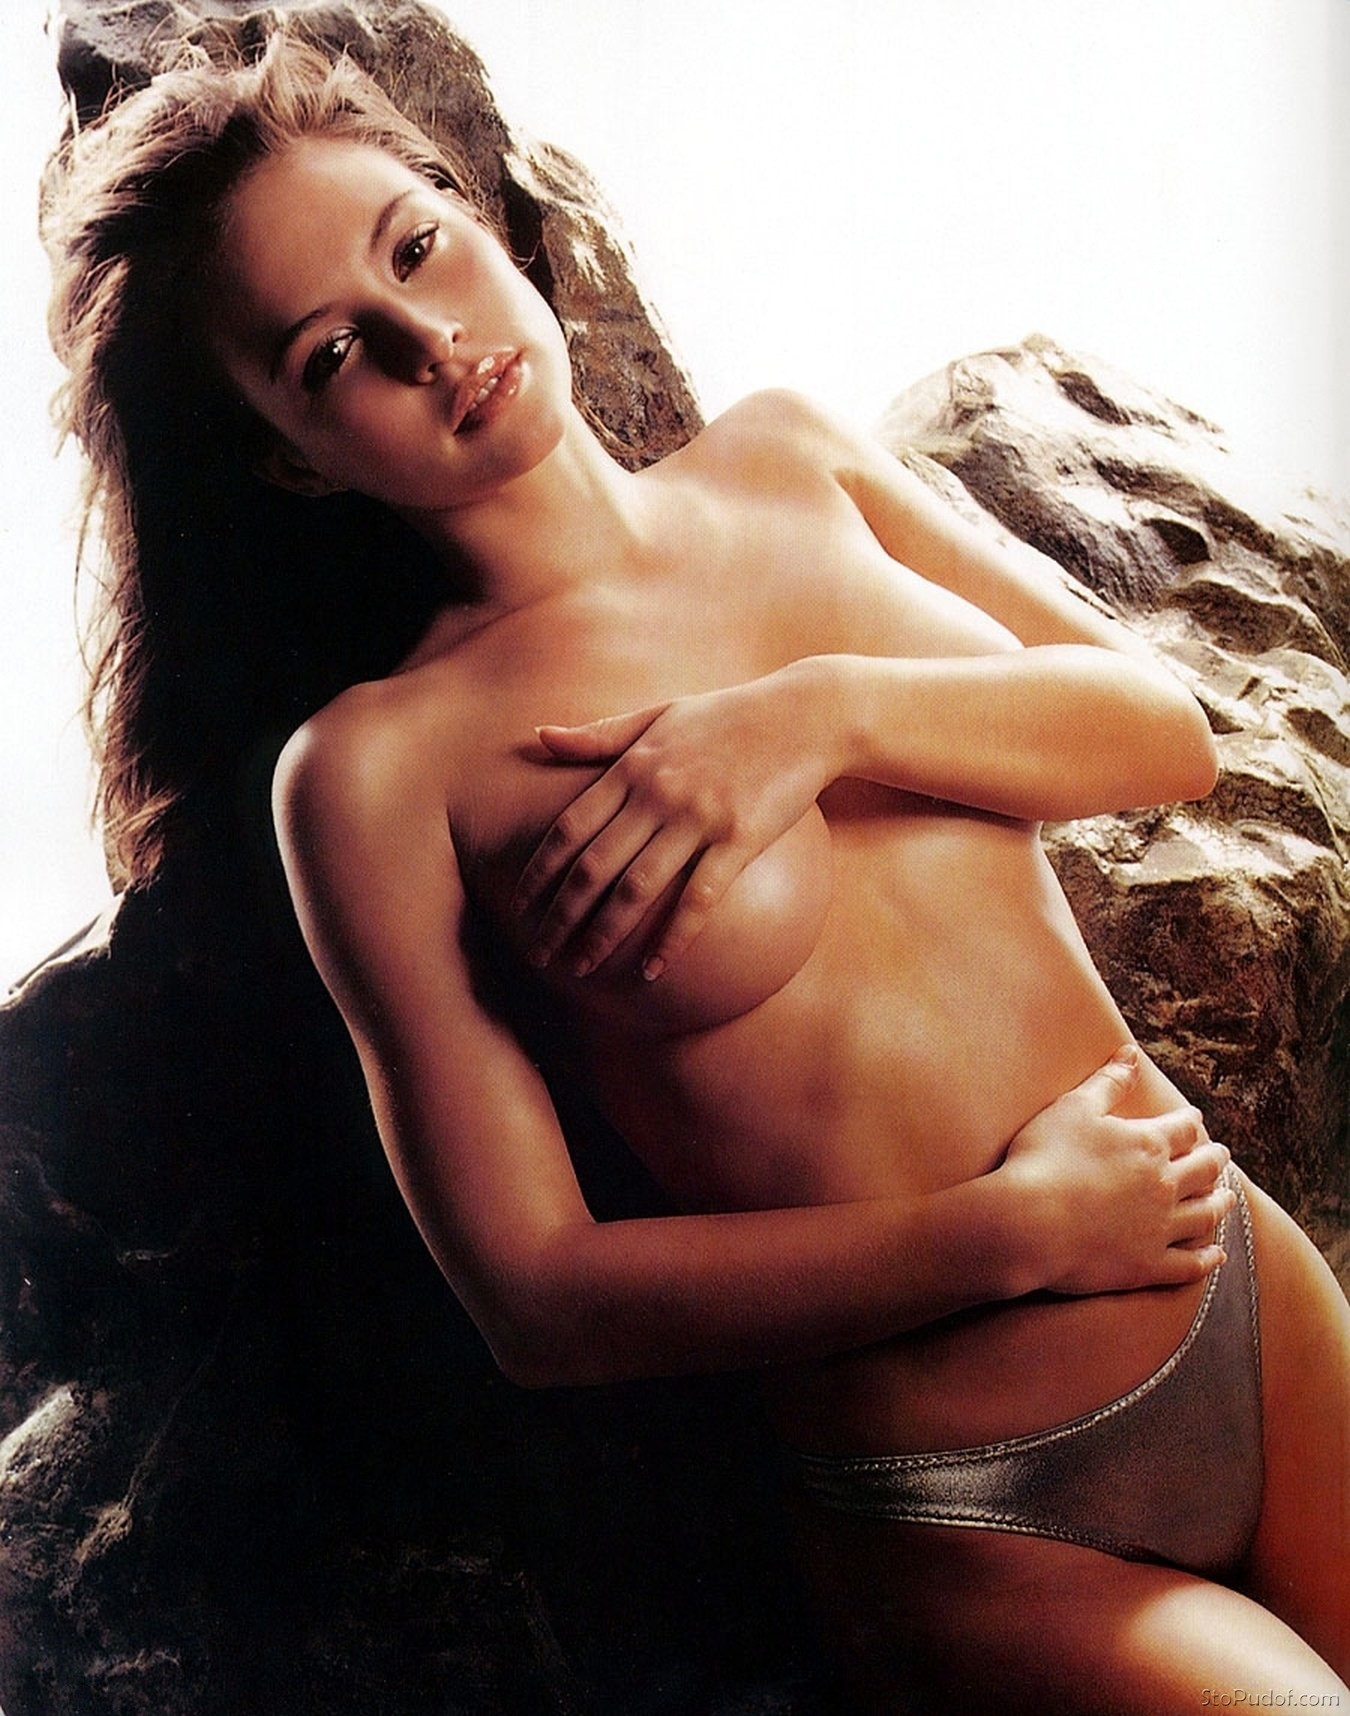 leaked Josie Maran nude pics uncensored - UkPhotoSafari